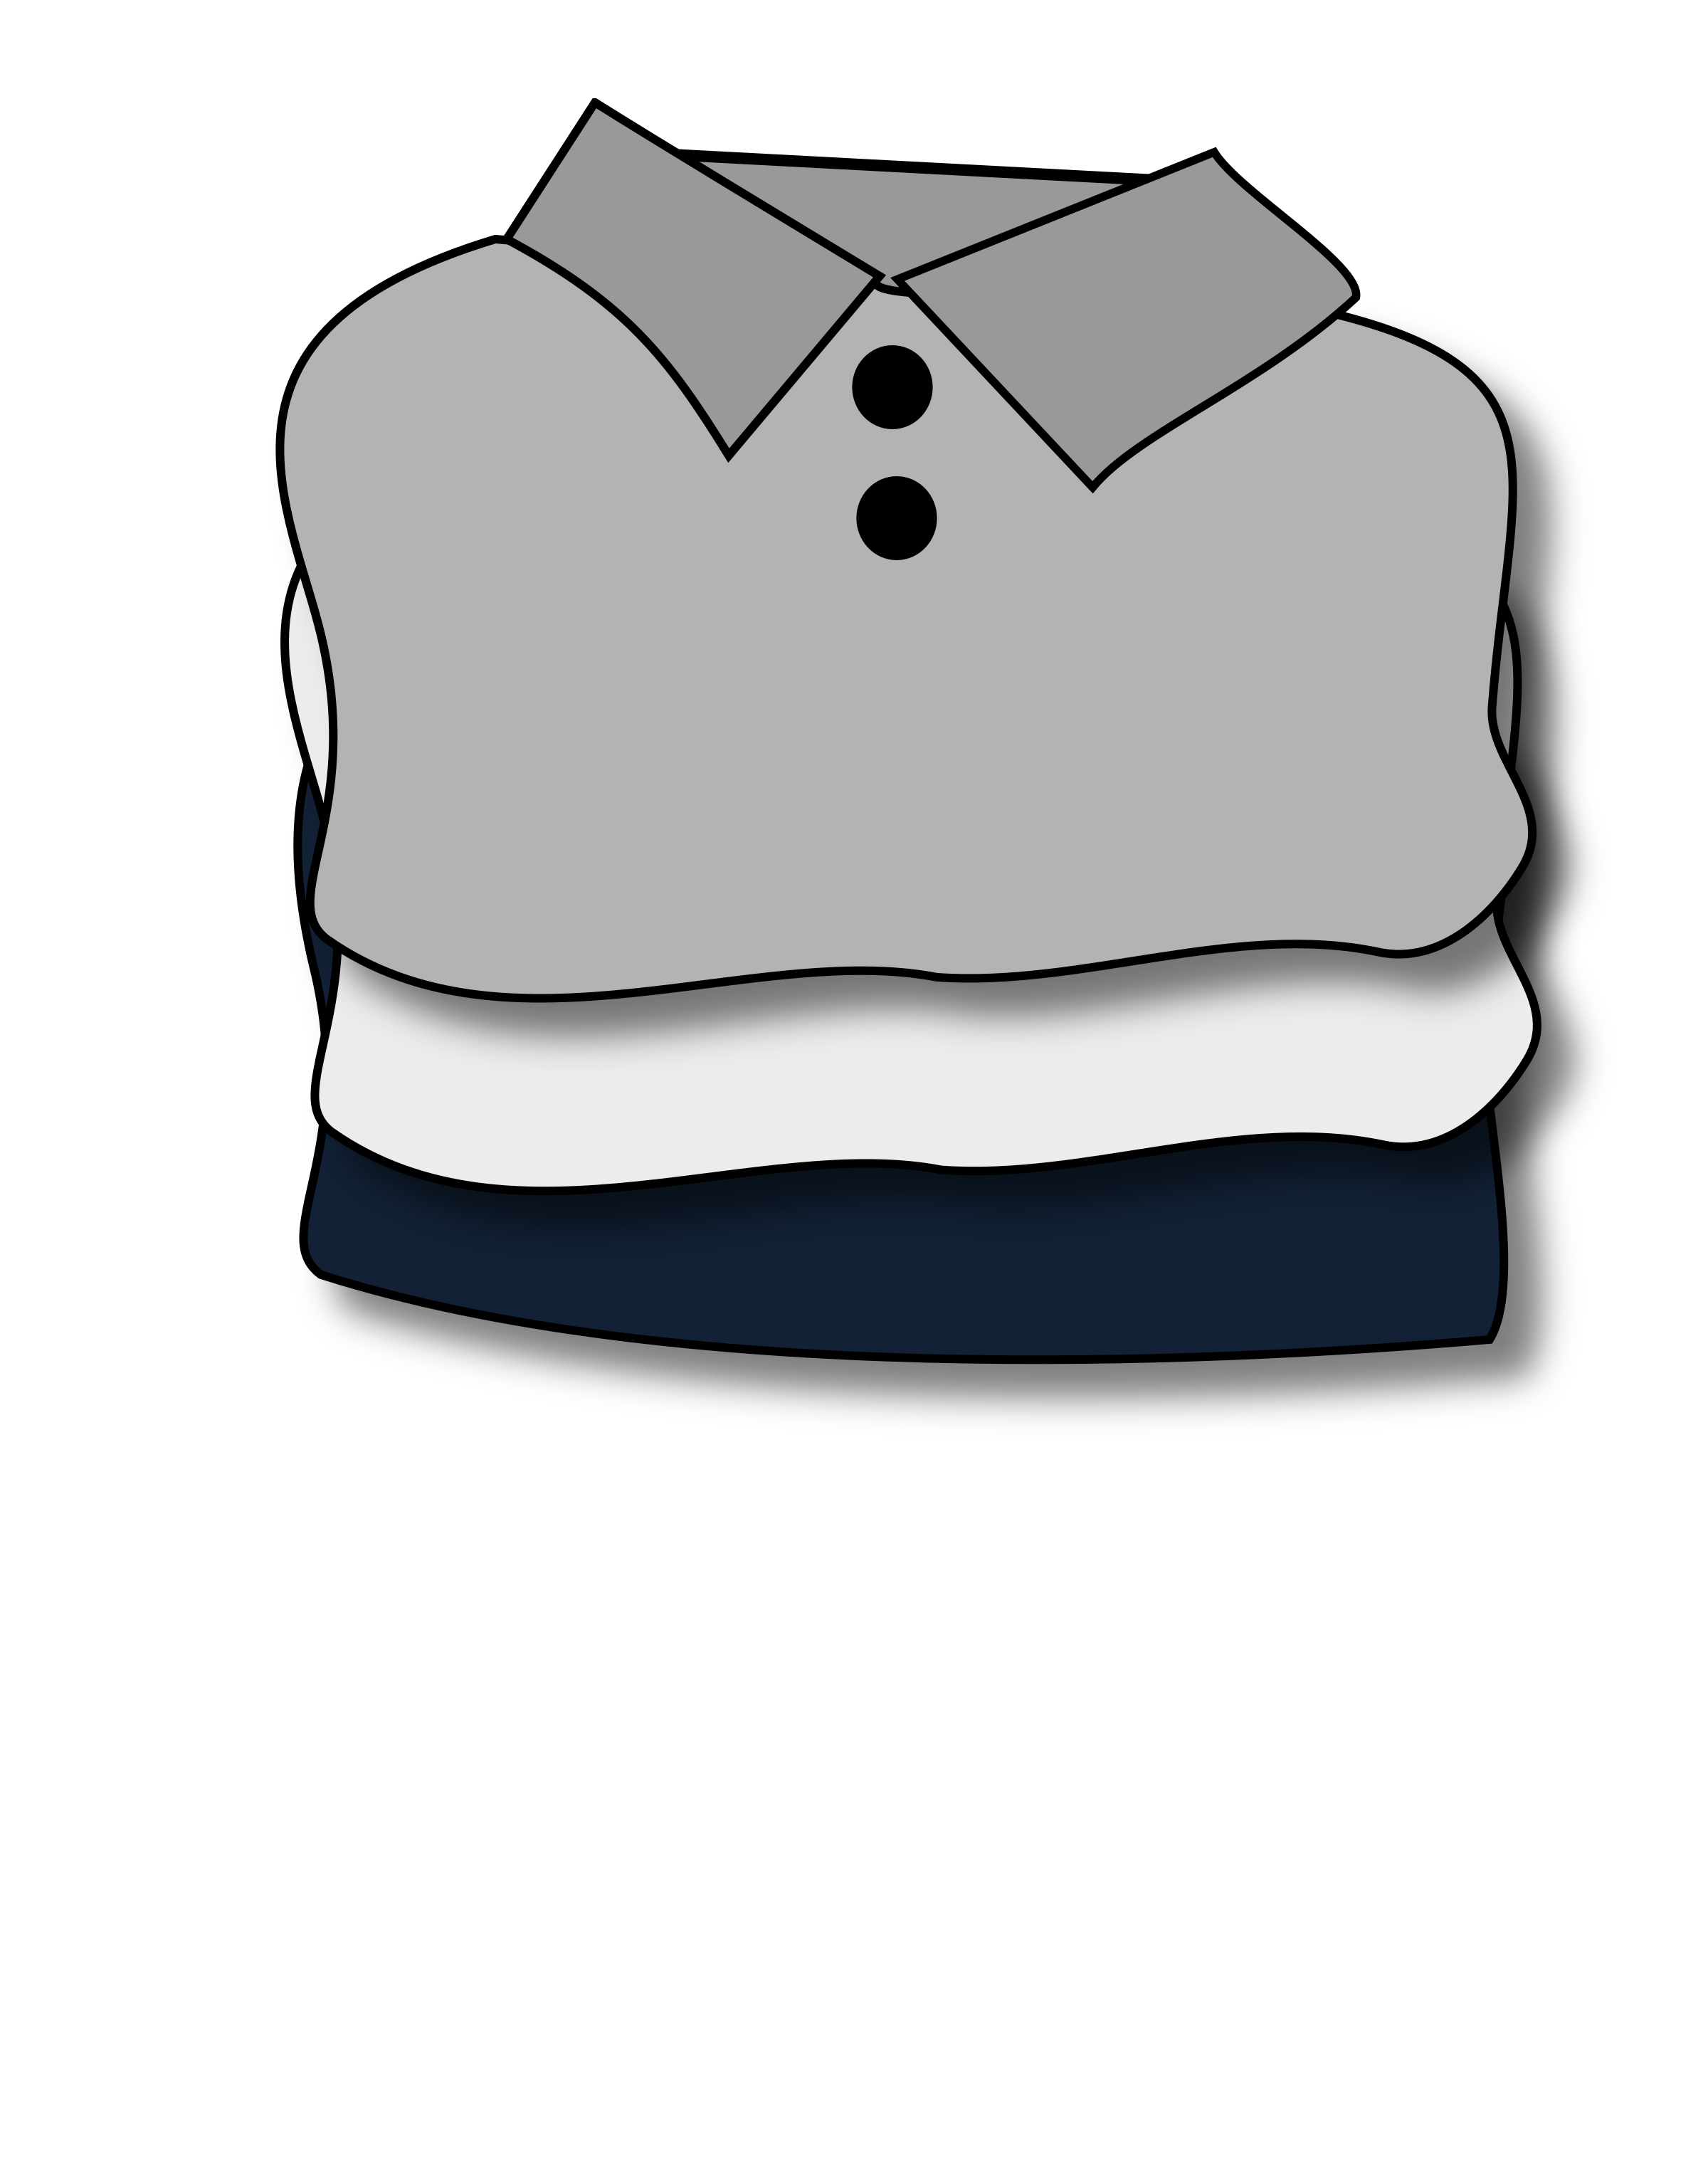 Shirt clipart folded shirt Clothes clothes Clipart folded folded